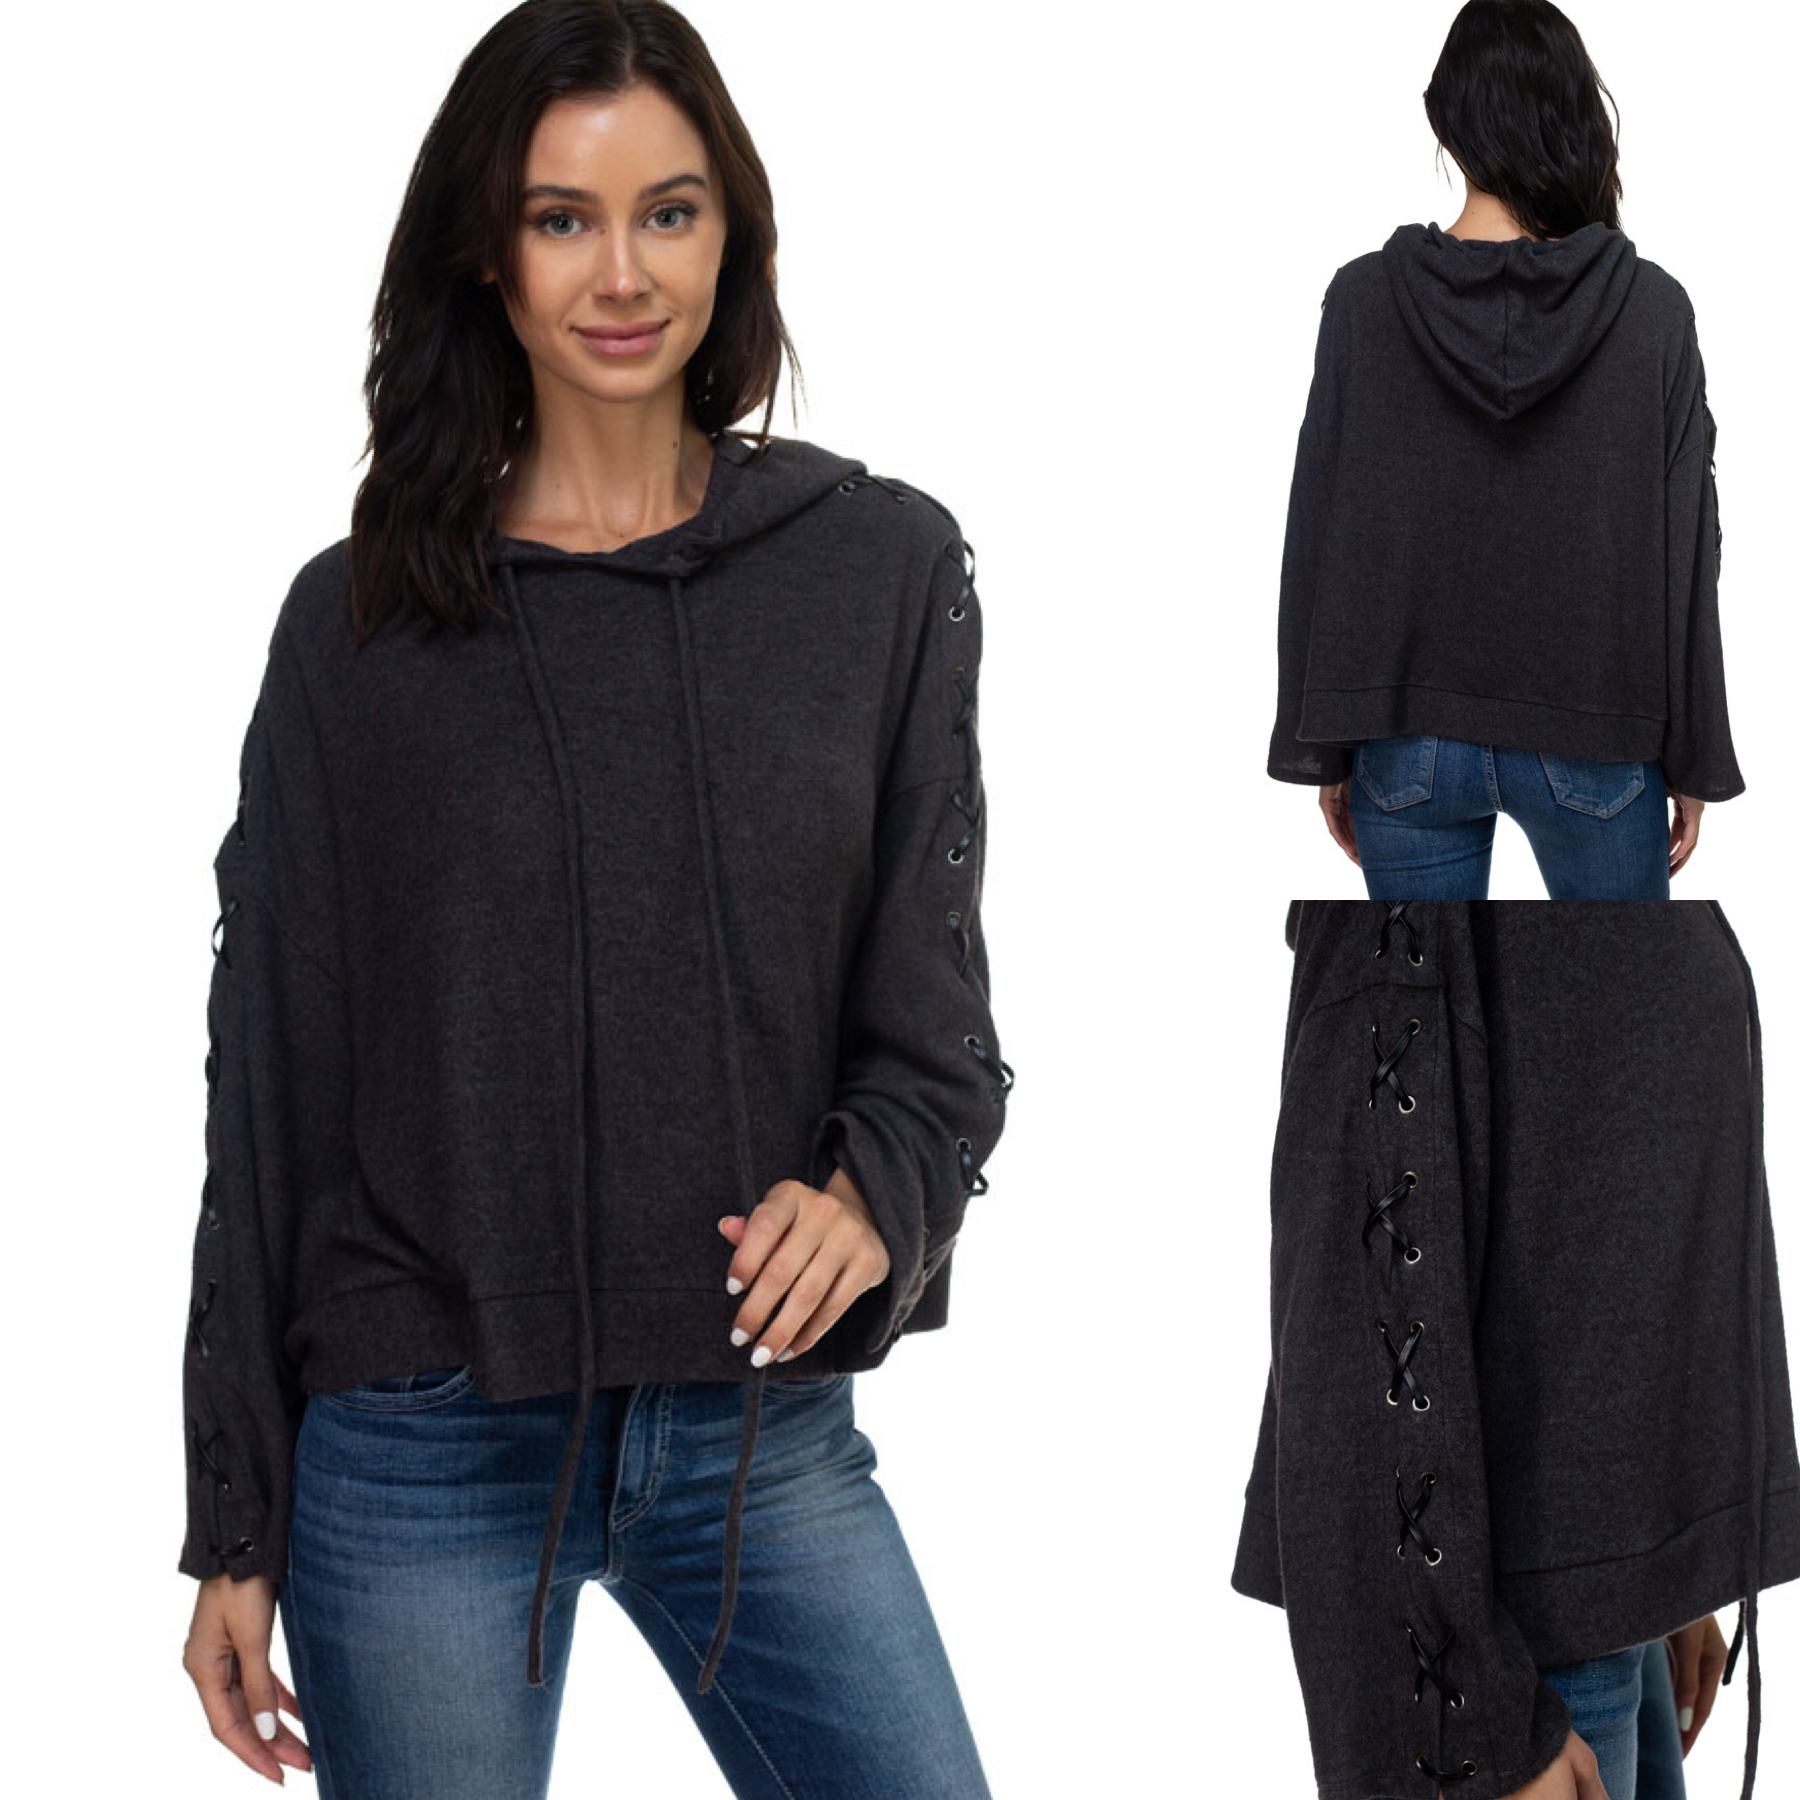 Lace Up Sleeve Cropped Hoodie